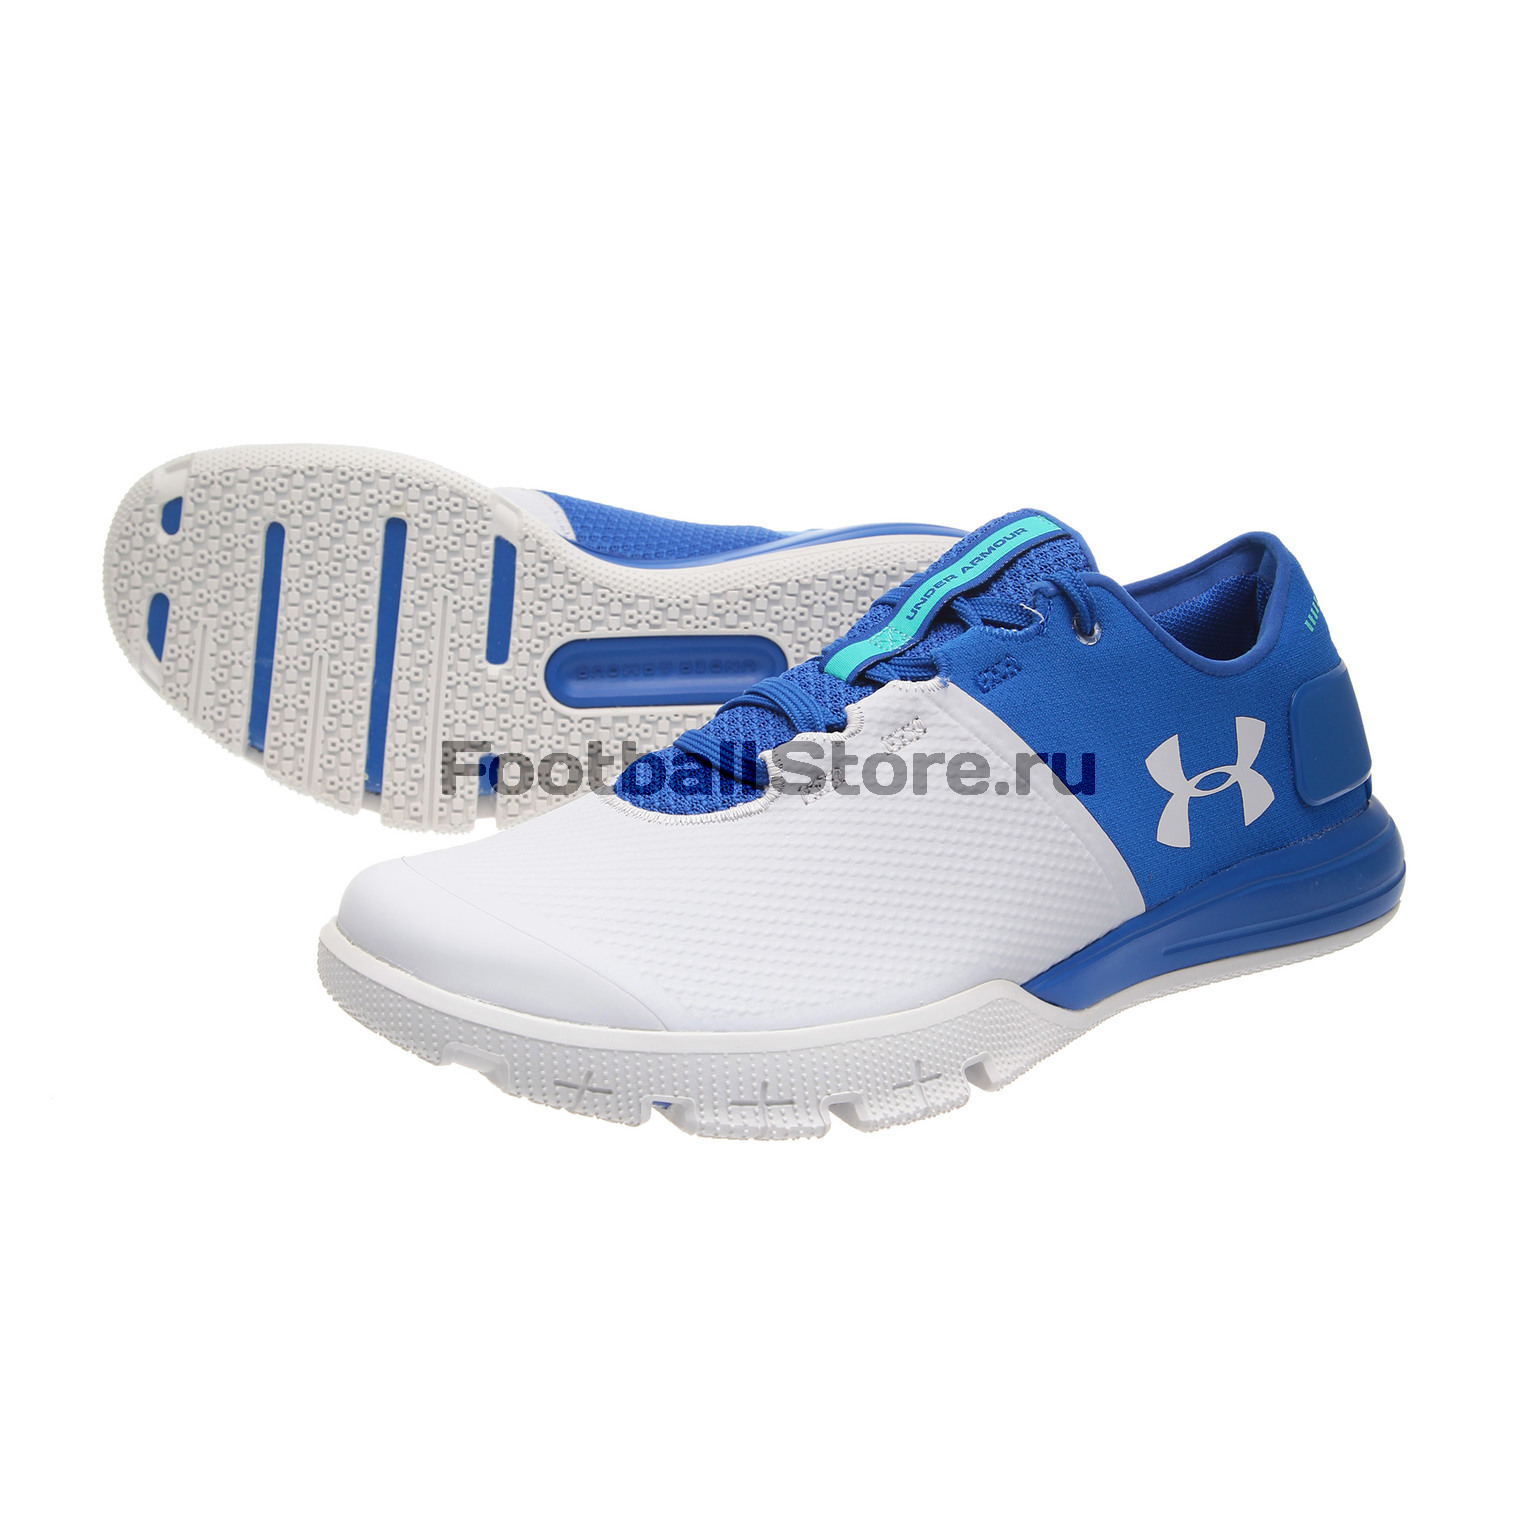 Кроссовки Under Armour Charged Ultimate TR 2.0 1285648-907 баскетбольные кроссовки nike lebron 11 what the lebron lbj 650884 400